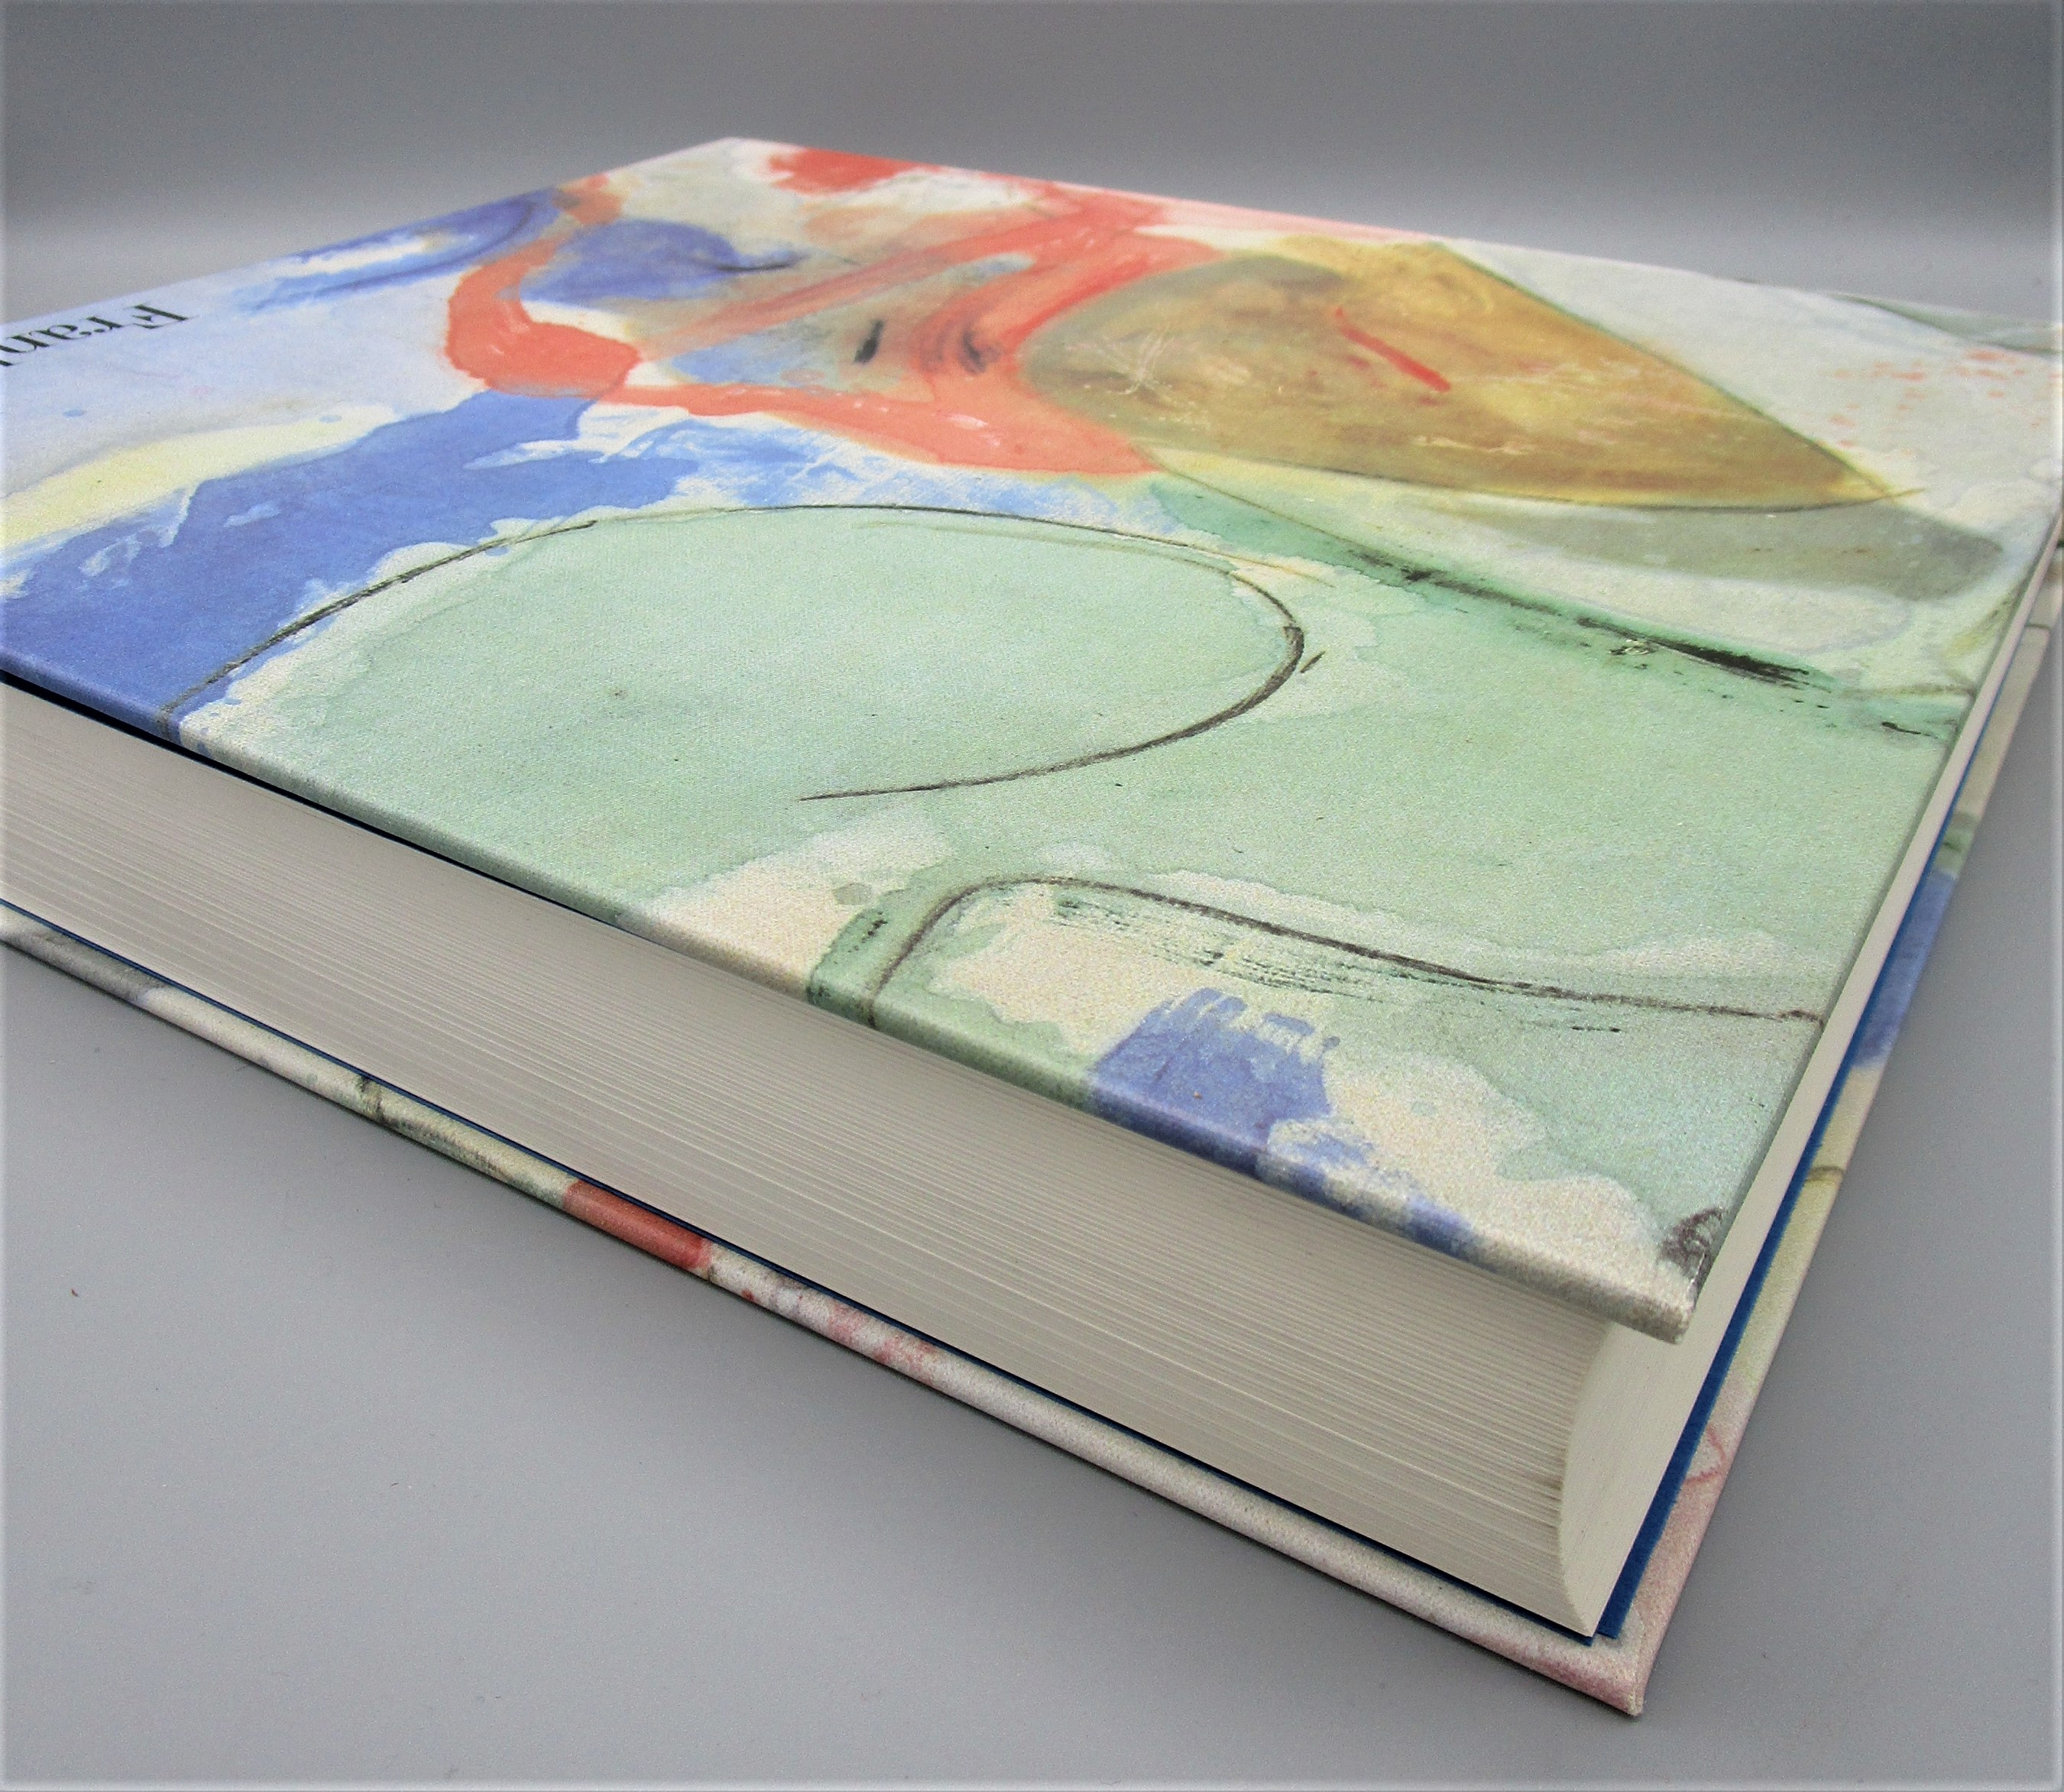 FRANKENTHALER, by John Elderfield - 1989